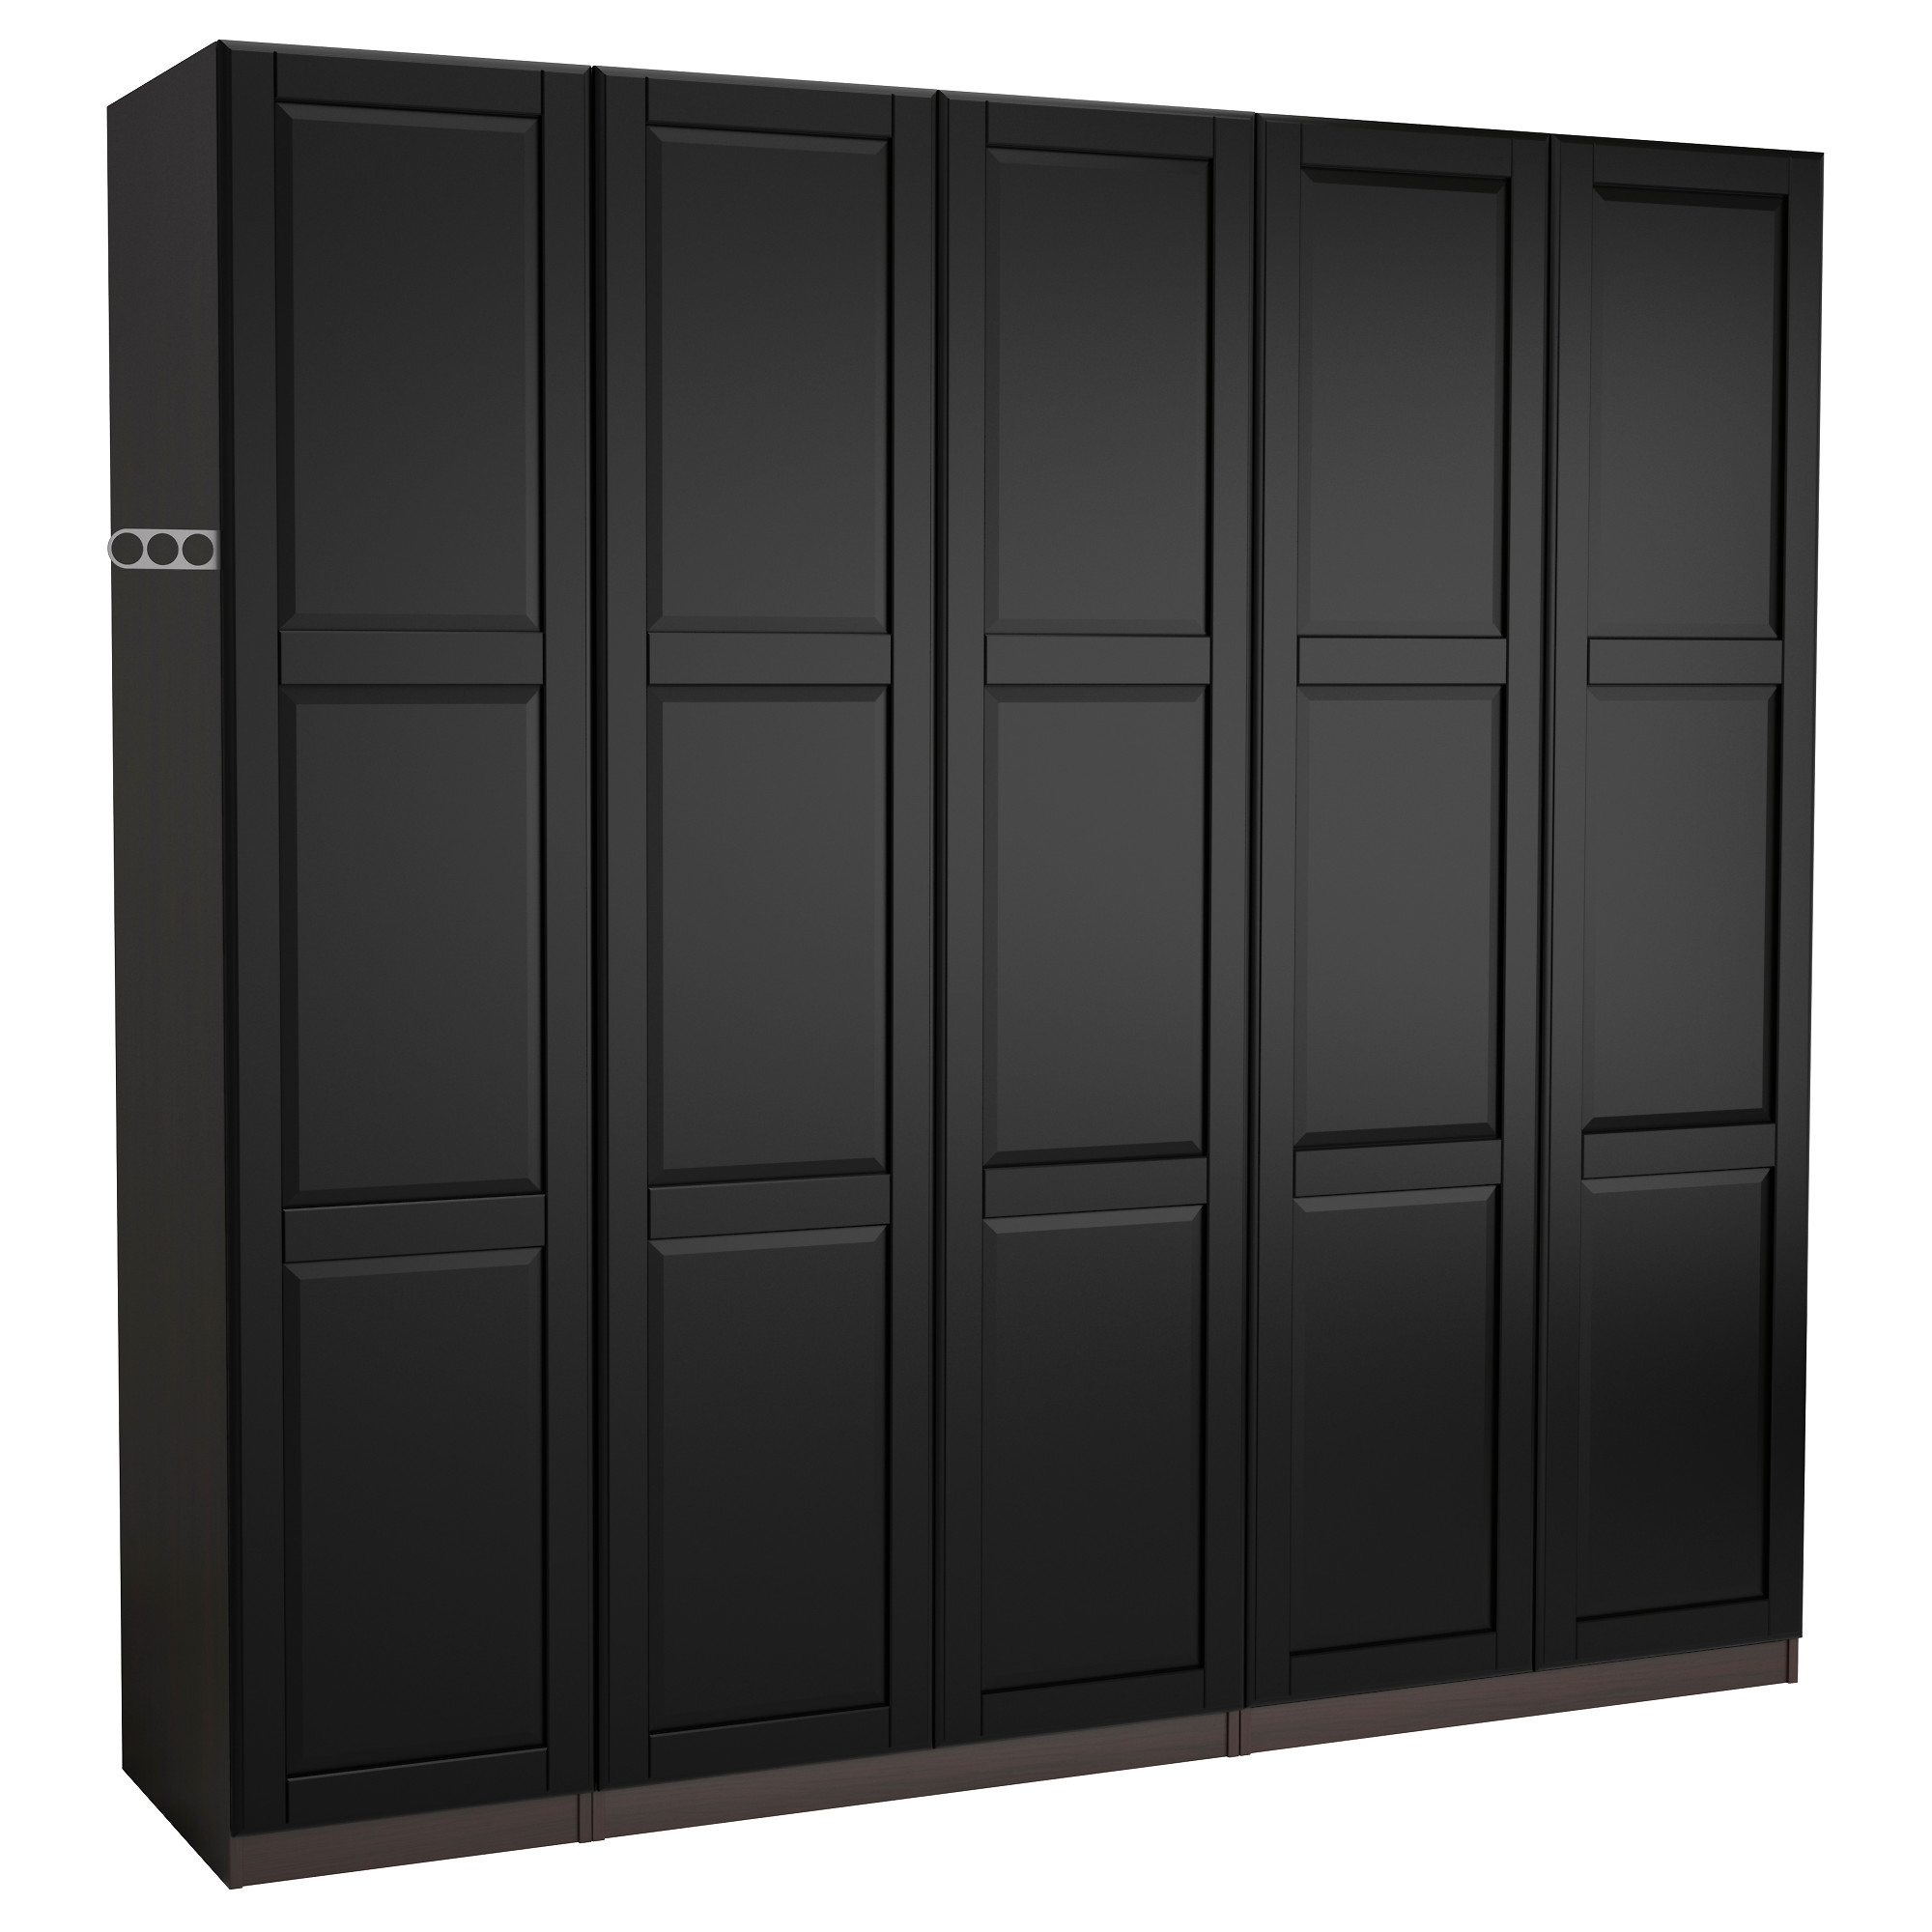 Most Popular Pax Wardrobe – 250X60X201 Cm – Ikea For Black Wardrobes (View 13 of 15)